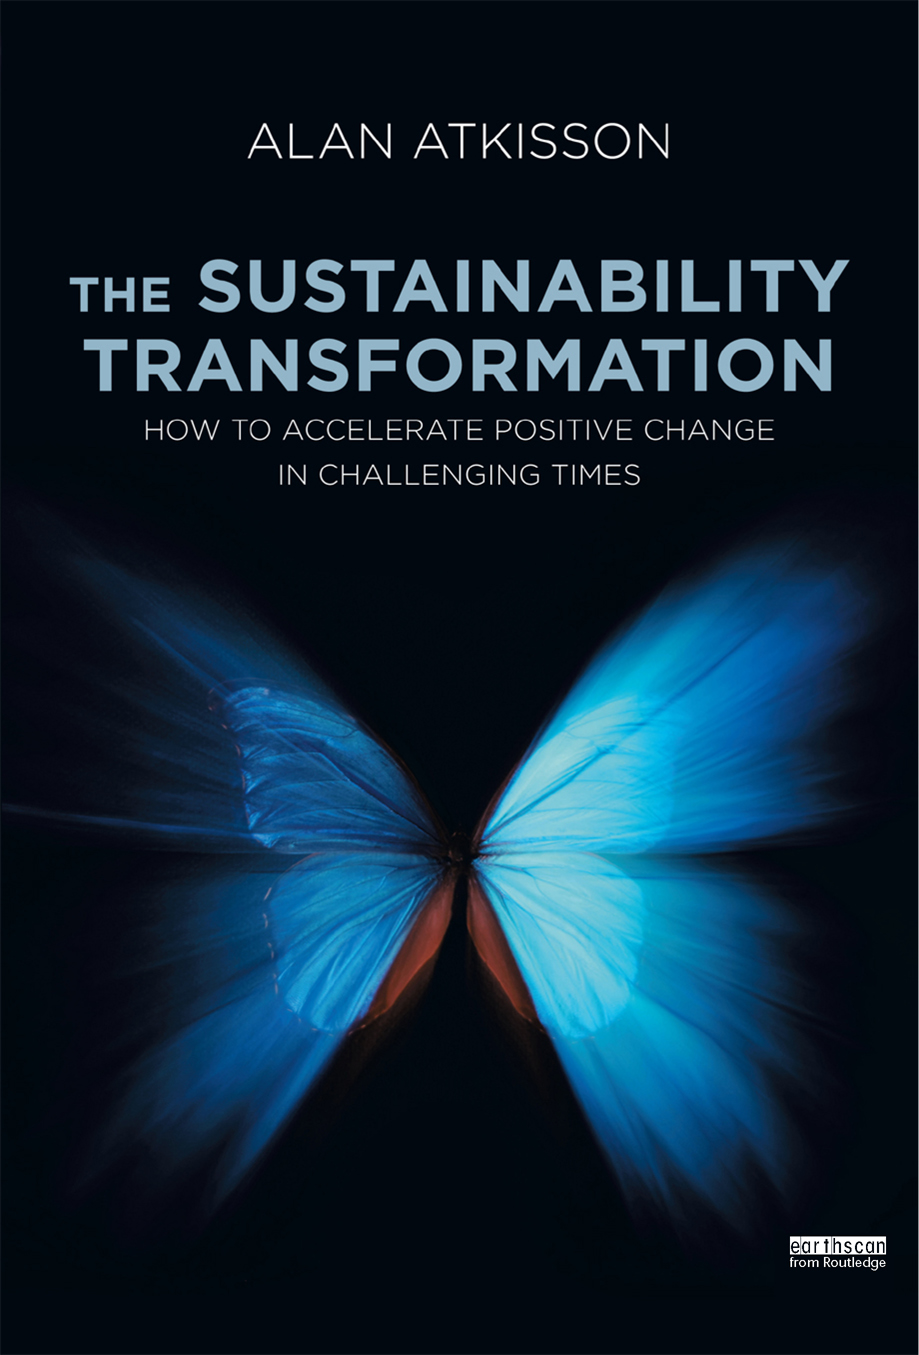 The Sustainability Transformation How to Accelerate Positive Change in Challenging Times